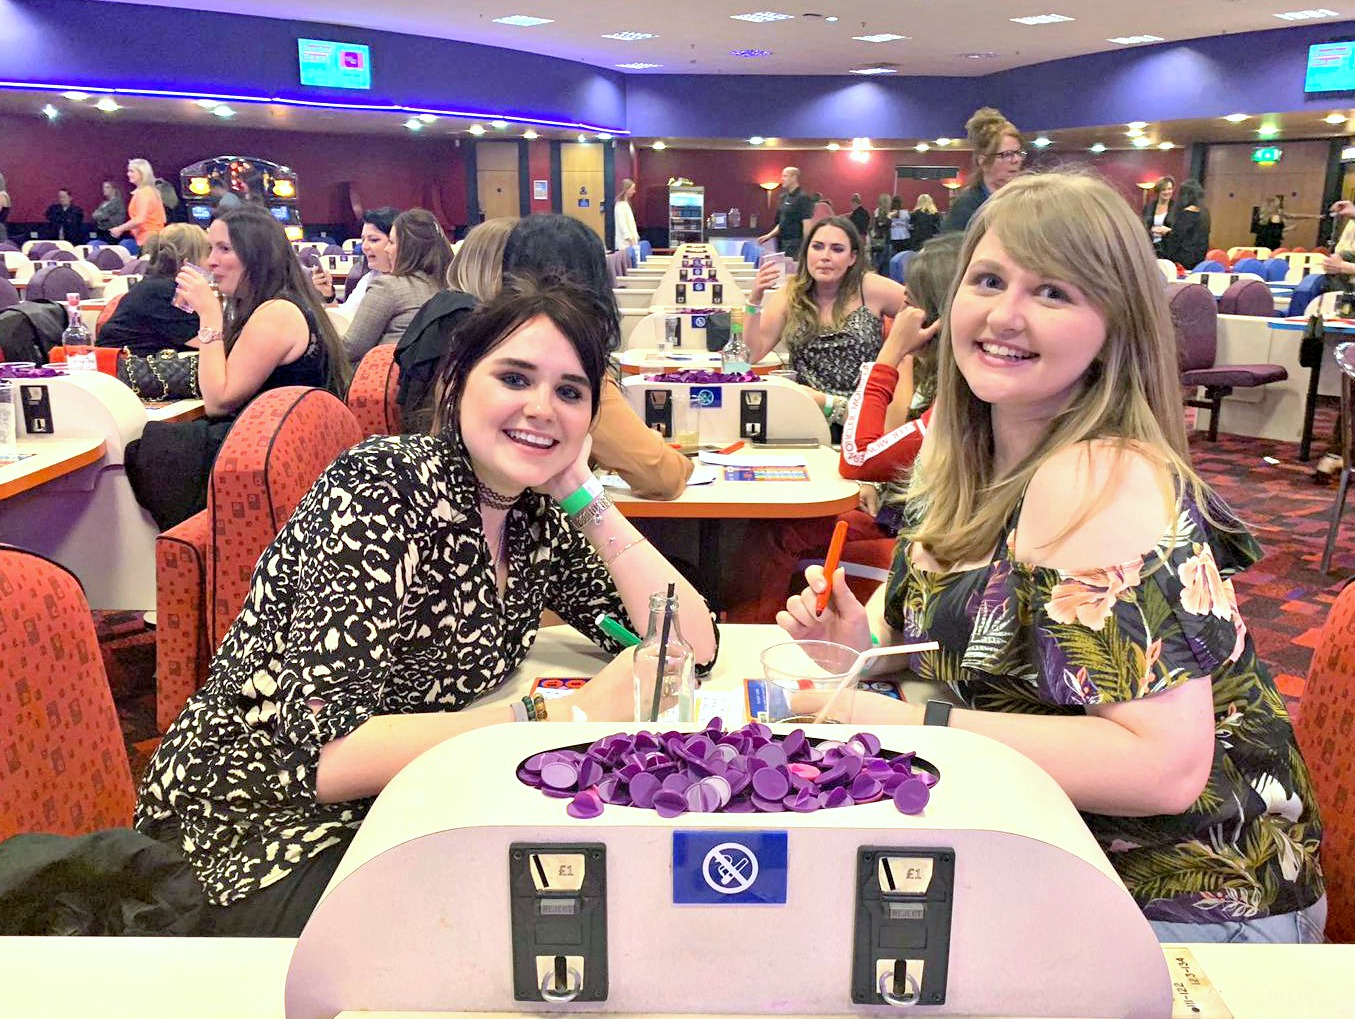 Rewind to the nineties at Mecca Bingo Birkenhead // Seeing Five play their greatest hits